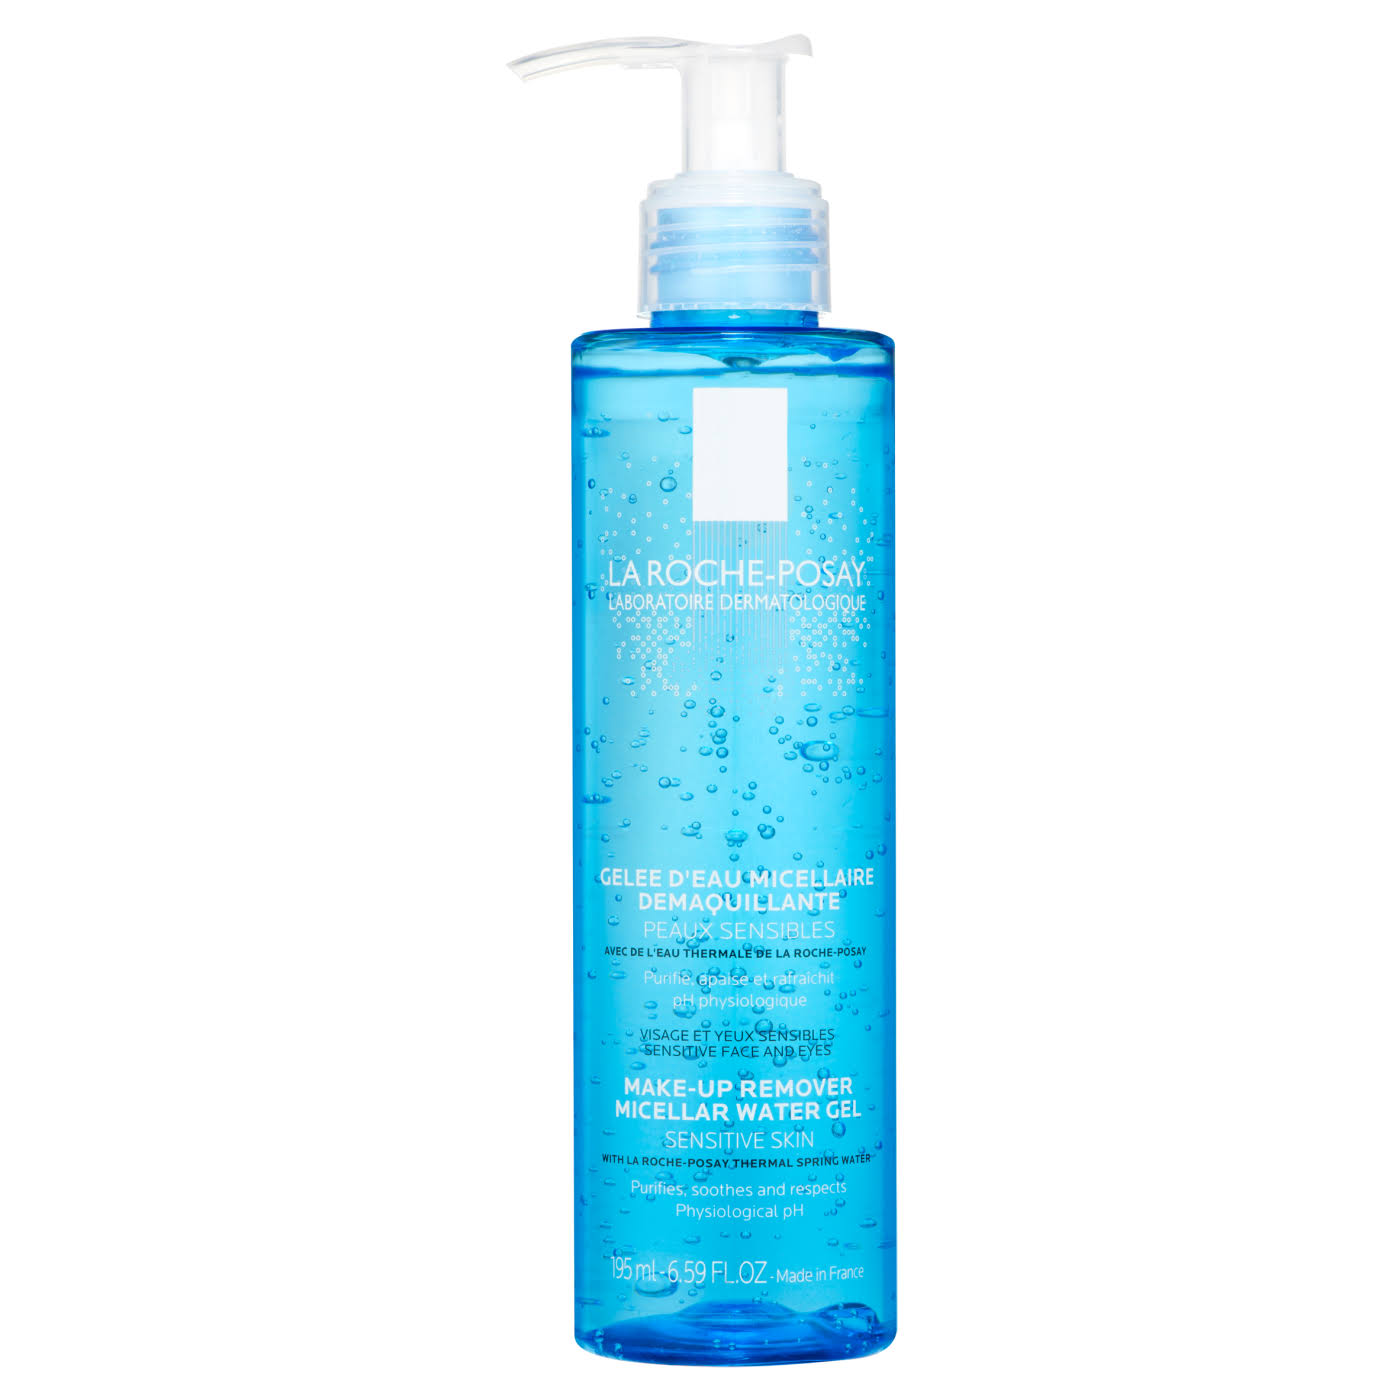 La Roche Posay - Make-up Remover Micellar Water Gel 195ml